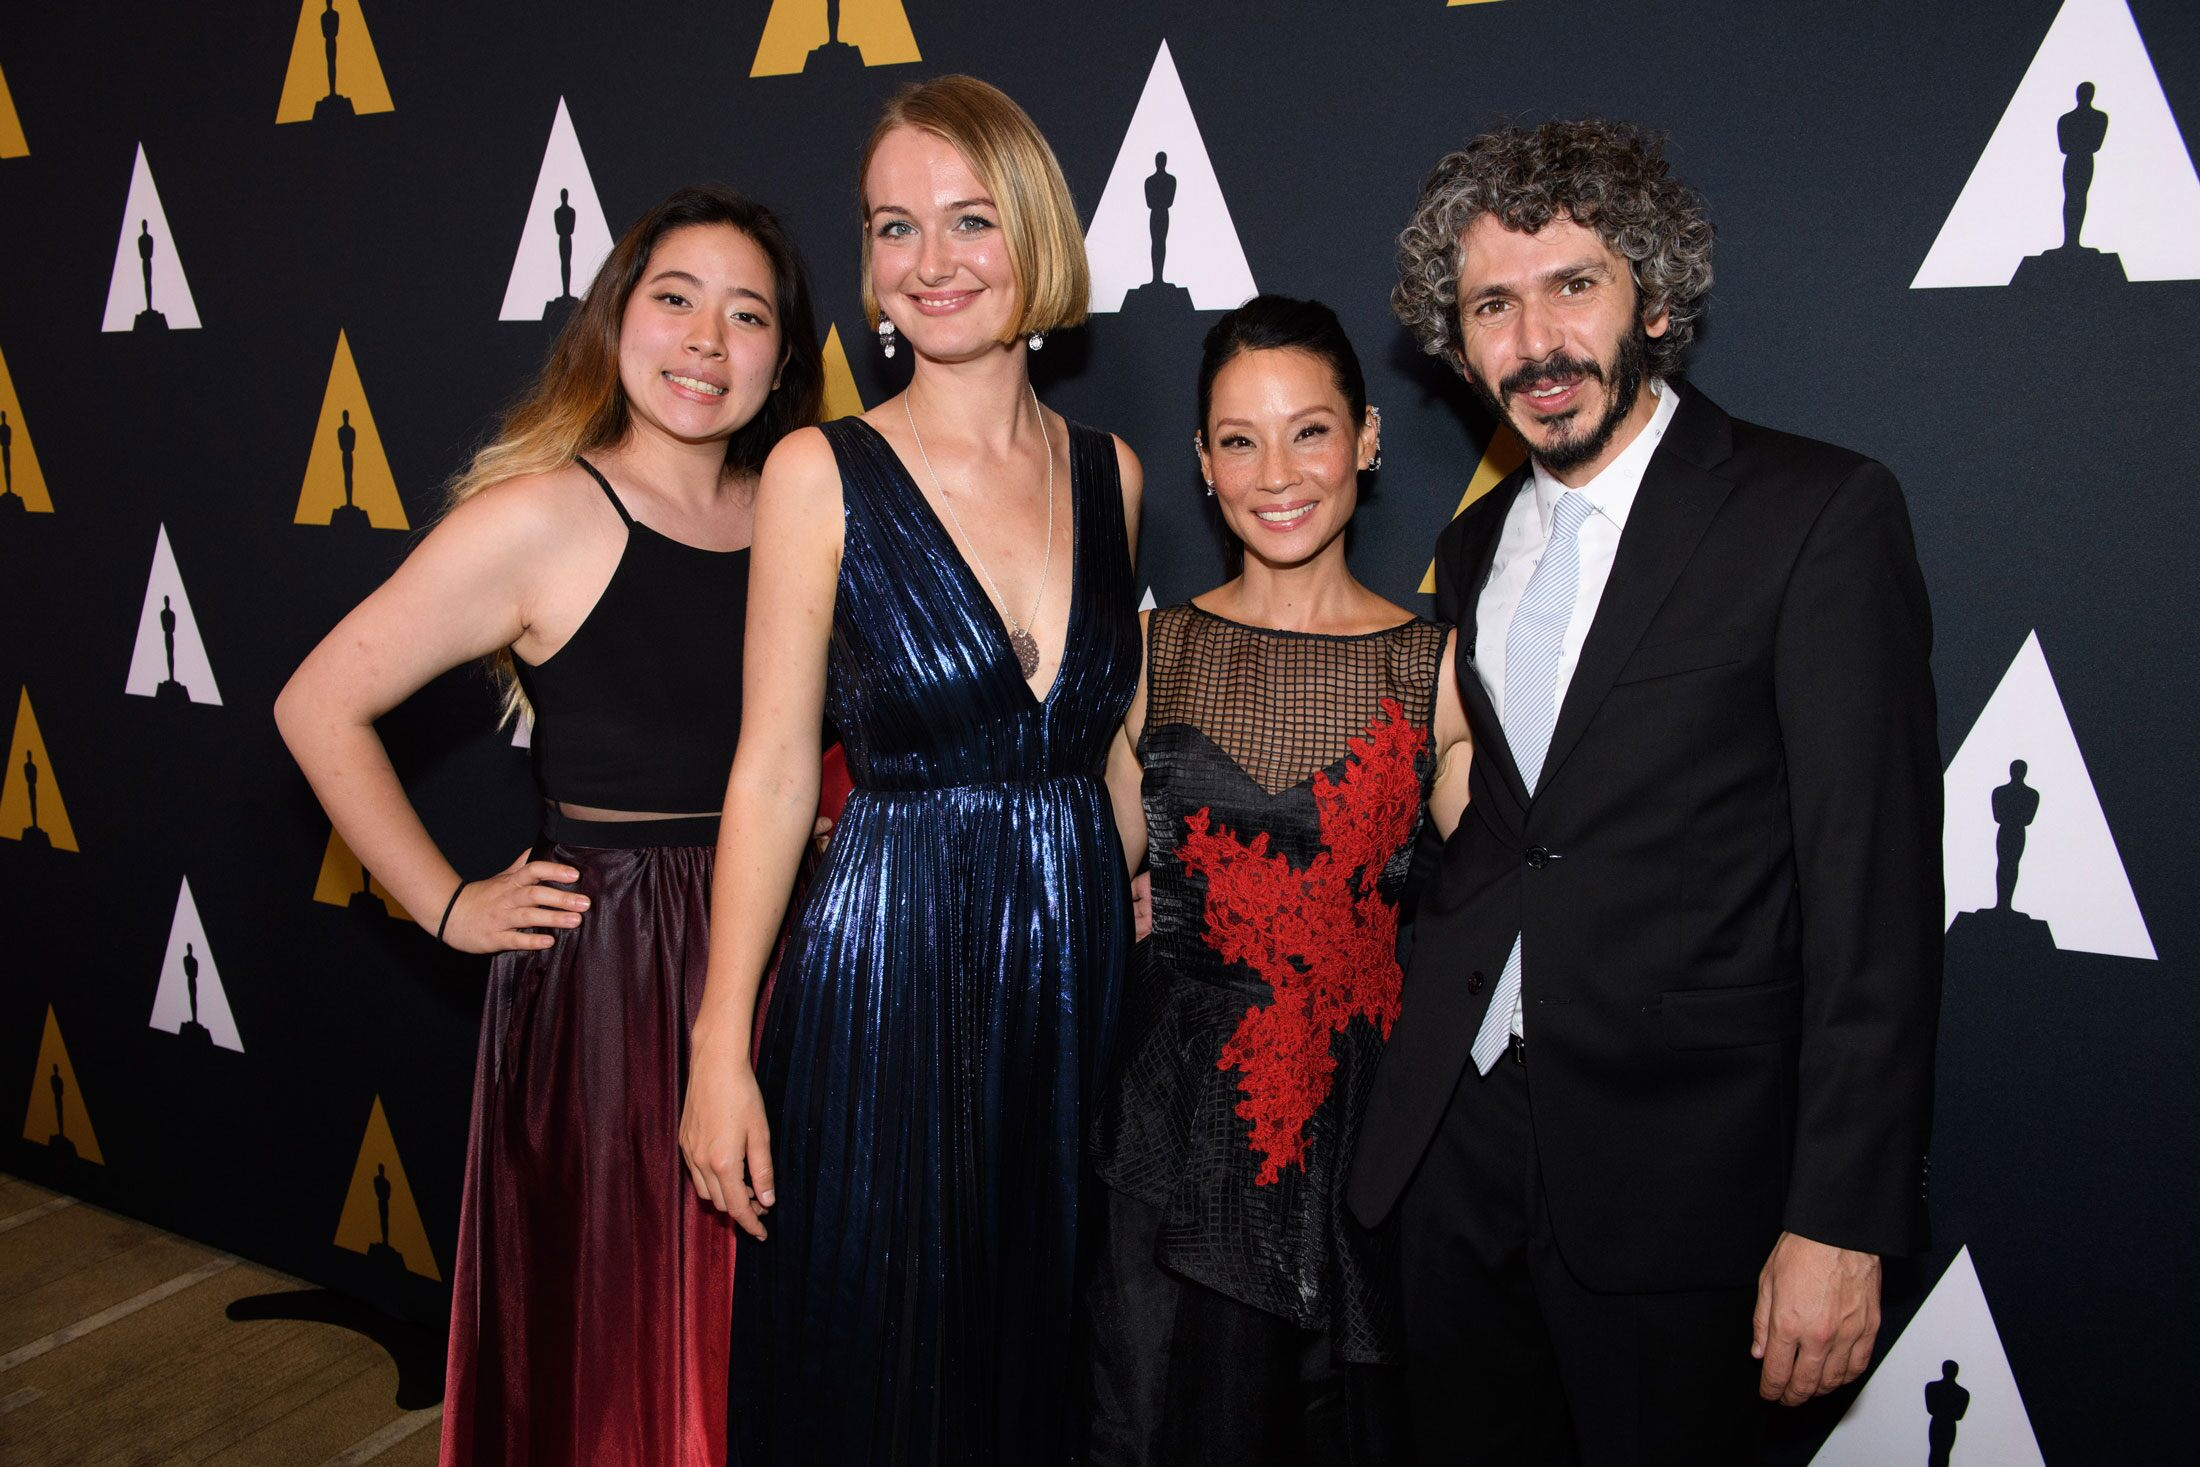 (left to right): Echo Wu, Alicja Jasina, Lucy Liu and Ahmad Saleh.